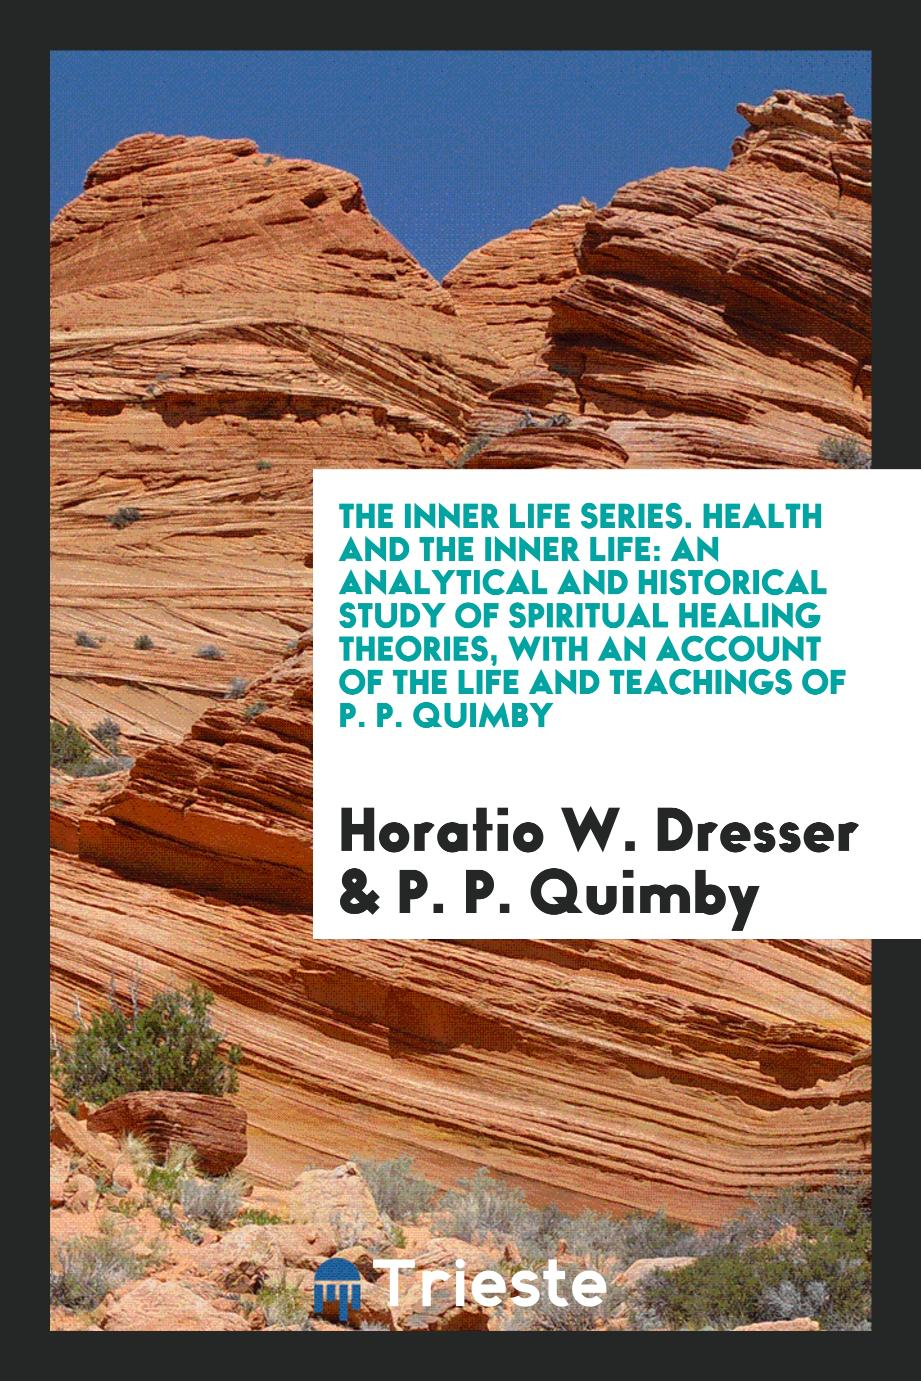 The Inner Life Series. Health and the Inner Life: An Analytical and Historical Study of Spiritual Healing Theories, with an Account of the Life and Teachings of P. P. Quimby